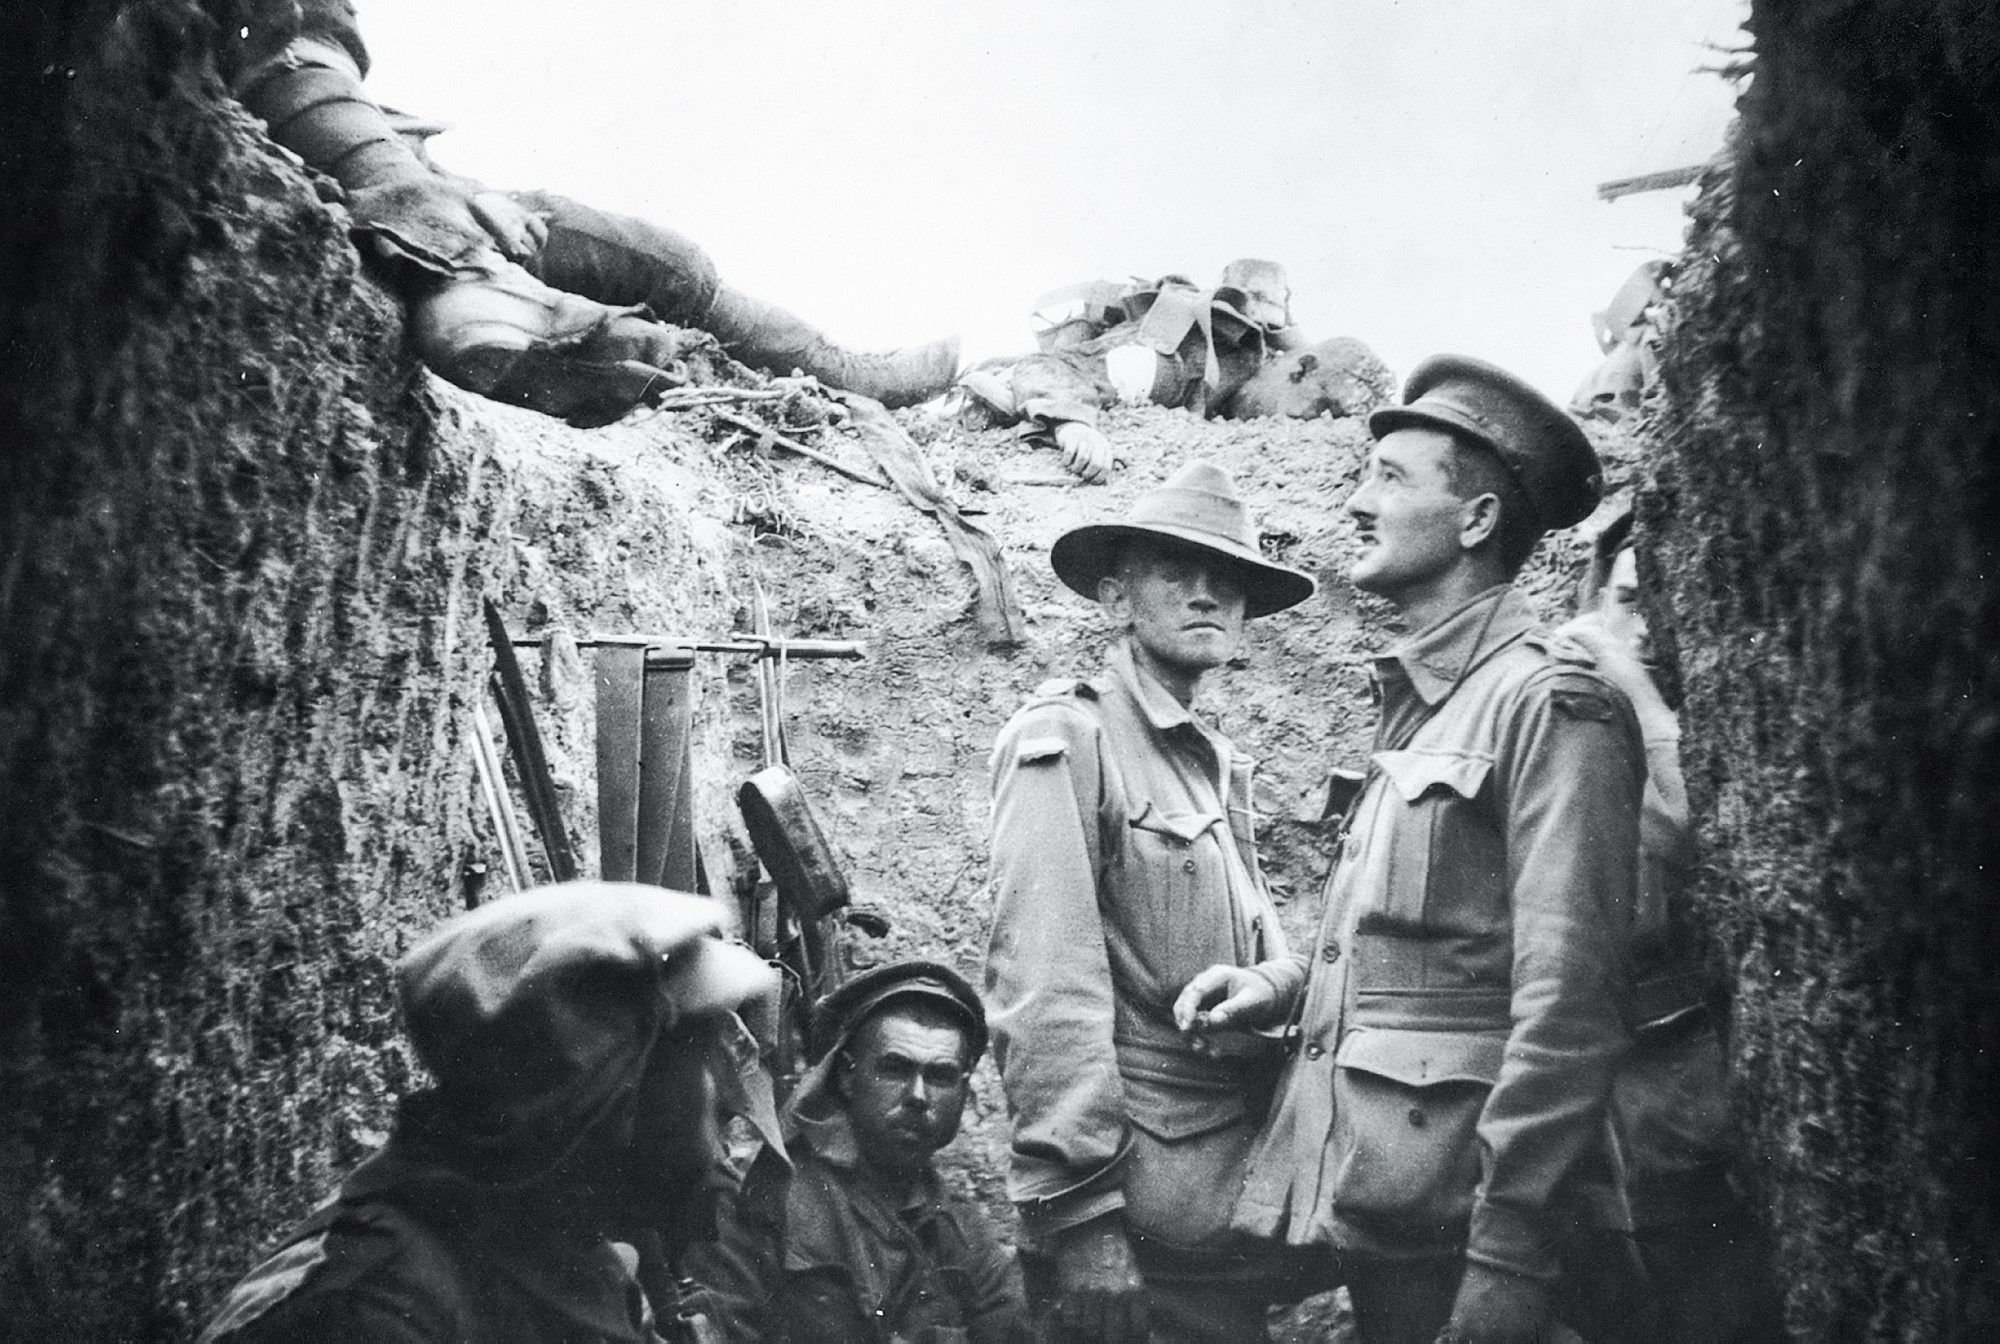 gallipoli campaign essays Hist105 essay question: 3 why did the terrible loss at gallipoli become such a key moment in the development of new zealand, australian and turkish nationalism but assume an even more significant role in the case of australia and turkey.